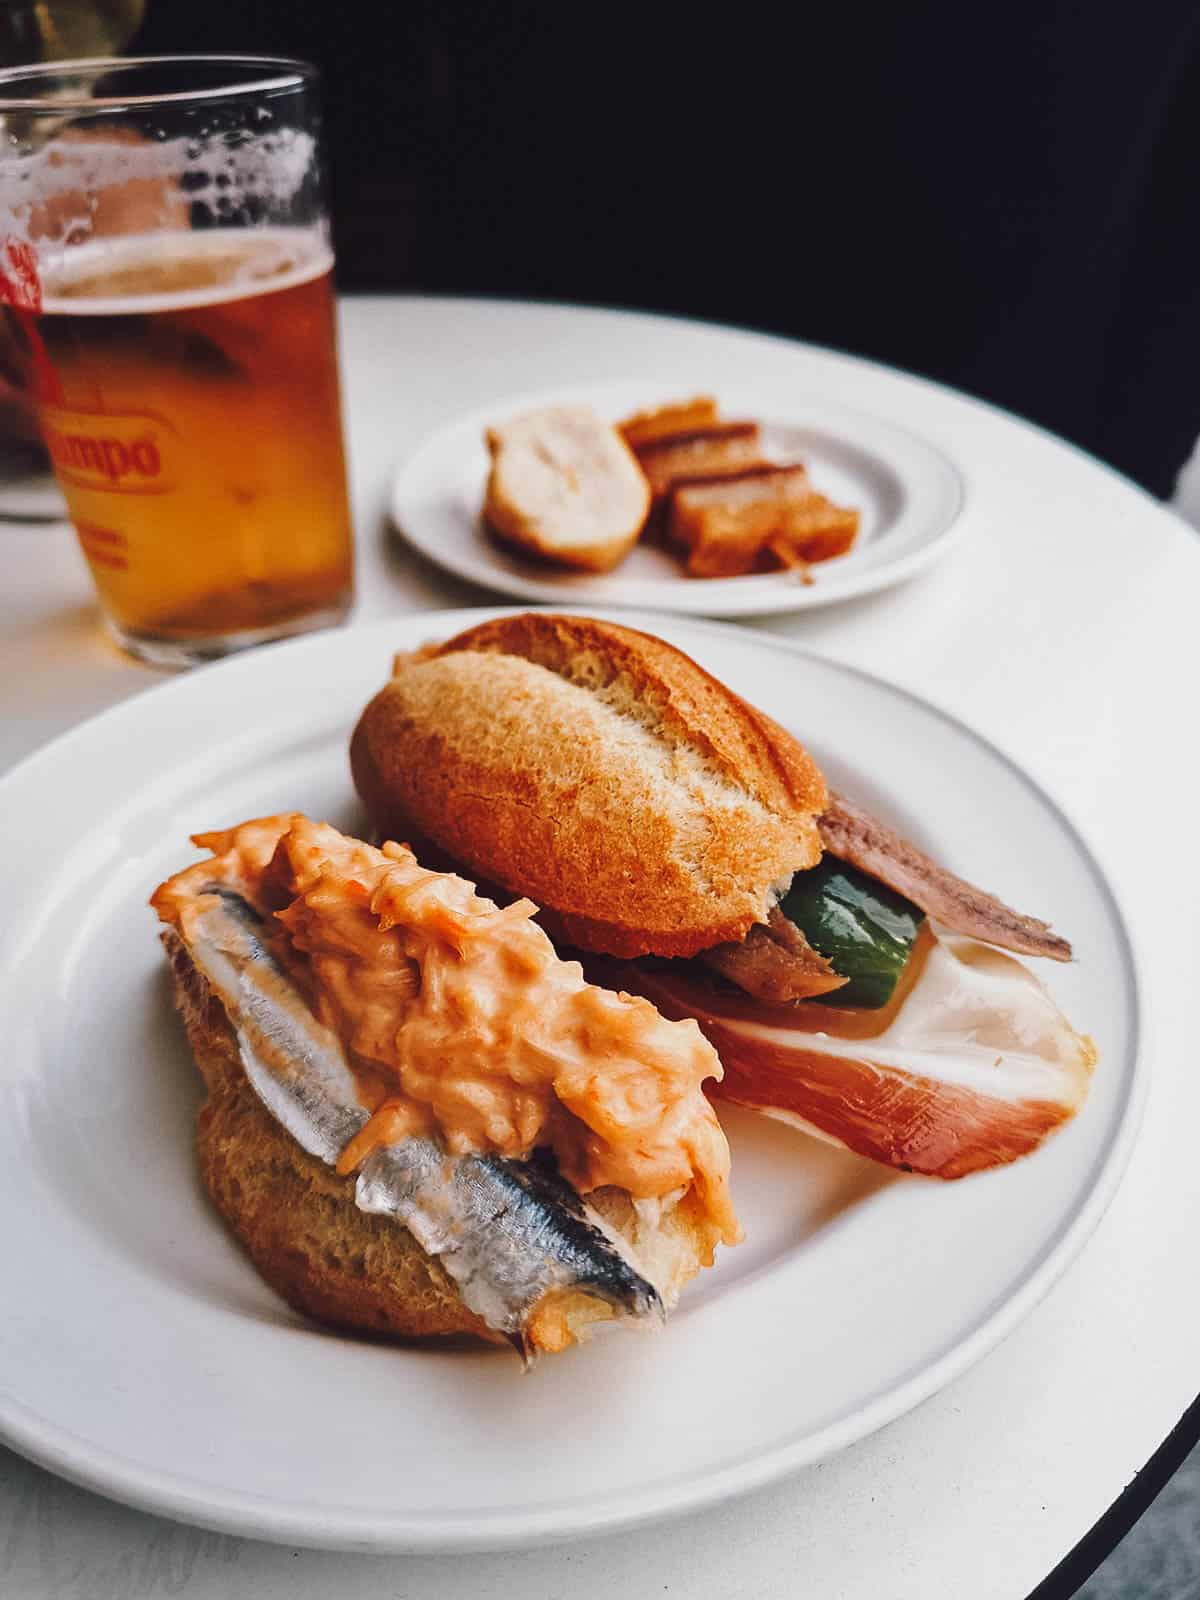 Pair of pintxos on a plate